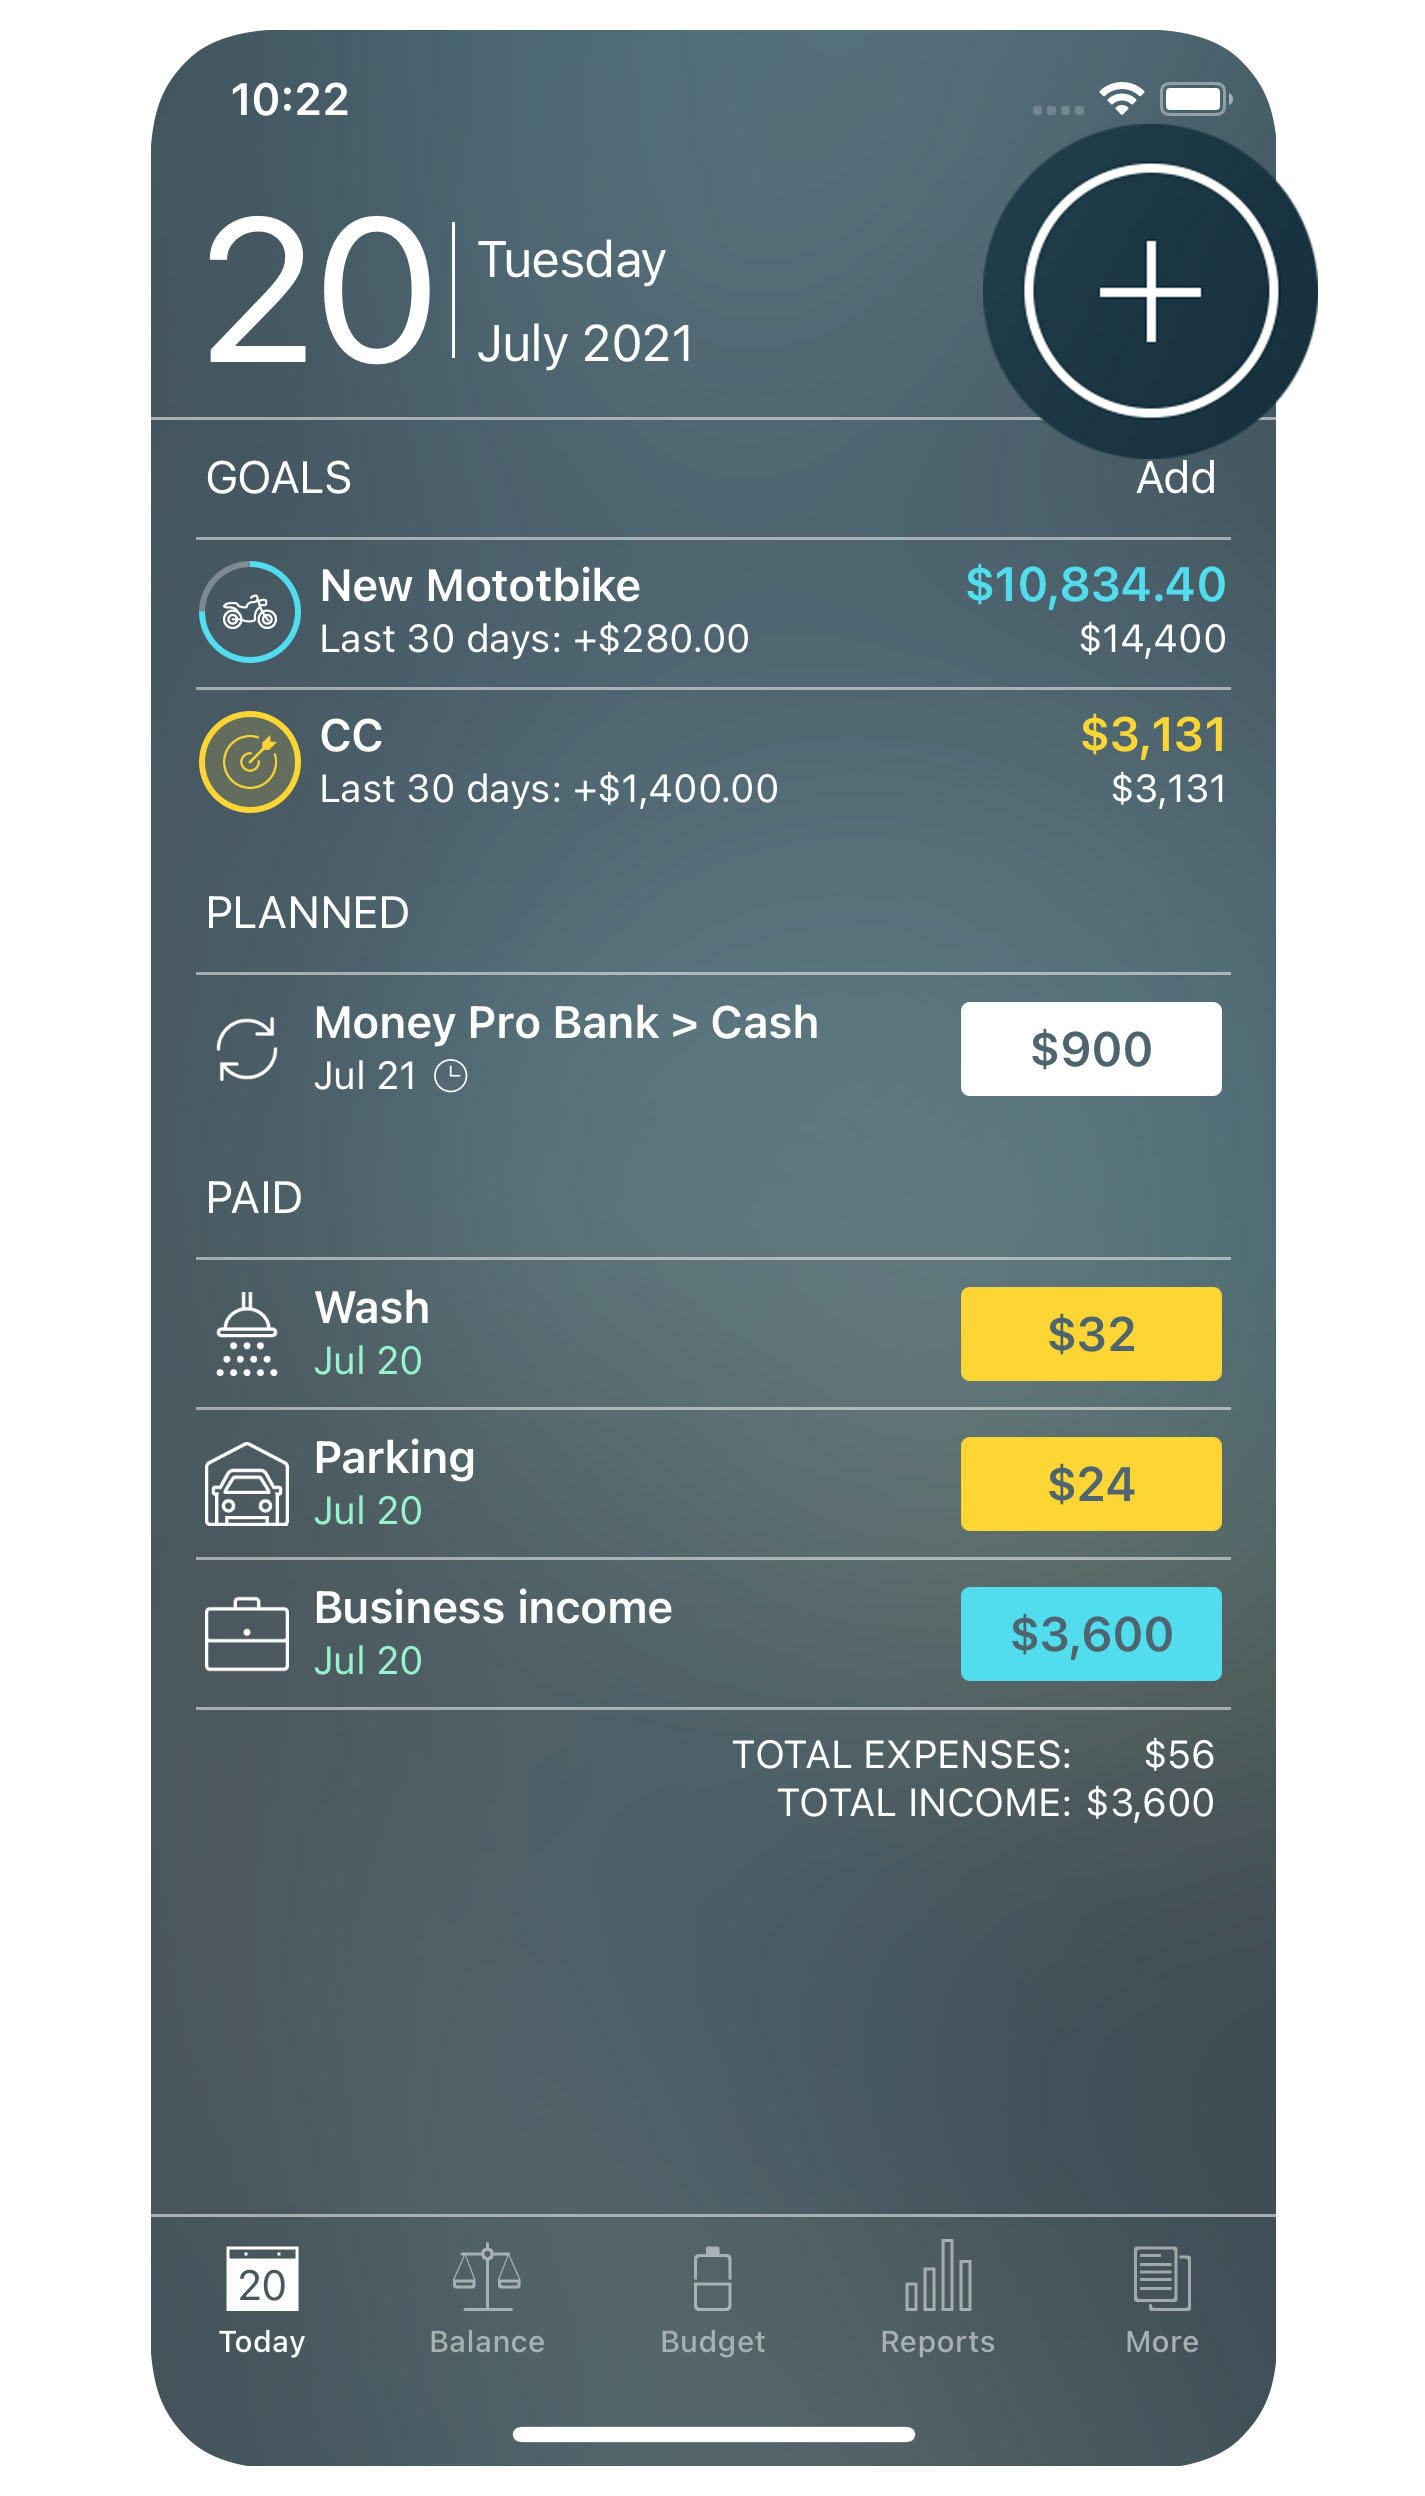 Money Pro - Creating a transaction - iPhone